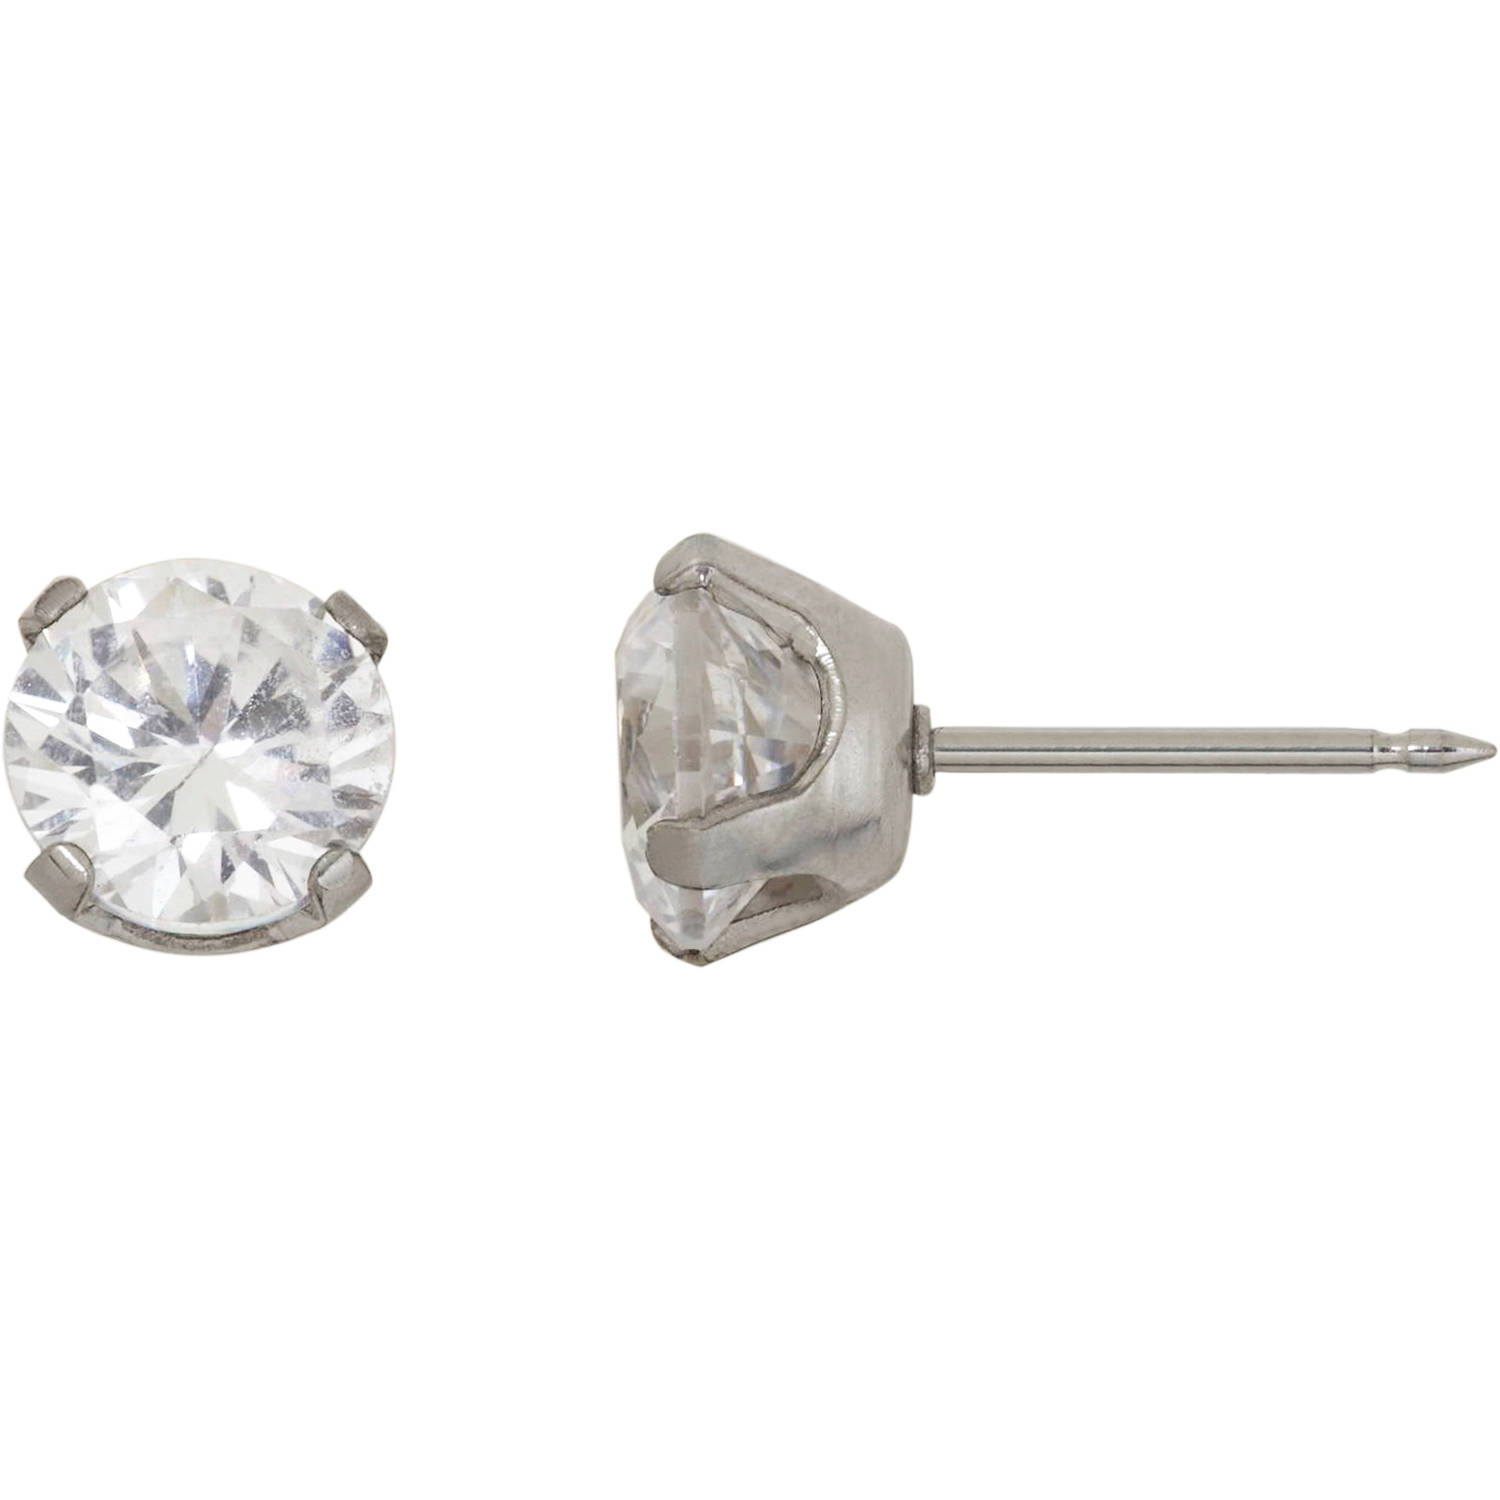 Home Ear Piercing Kit with Stainless Steel 7mm CZ Earring